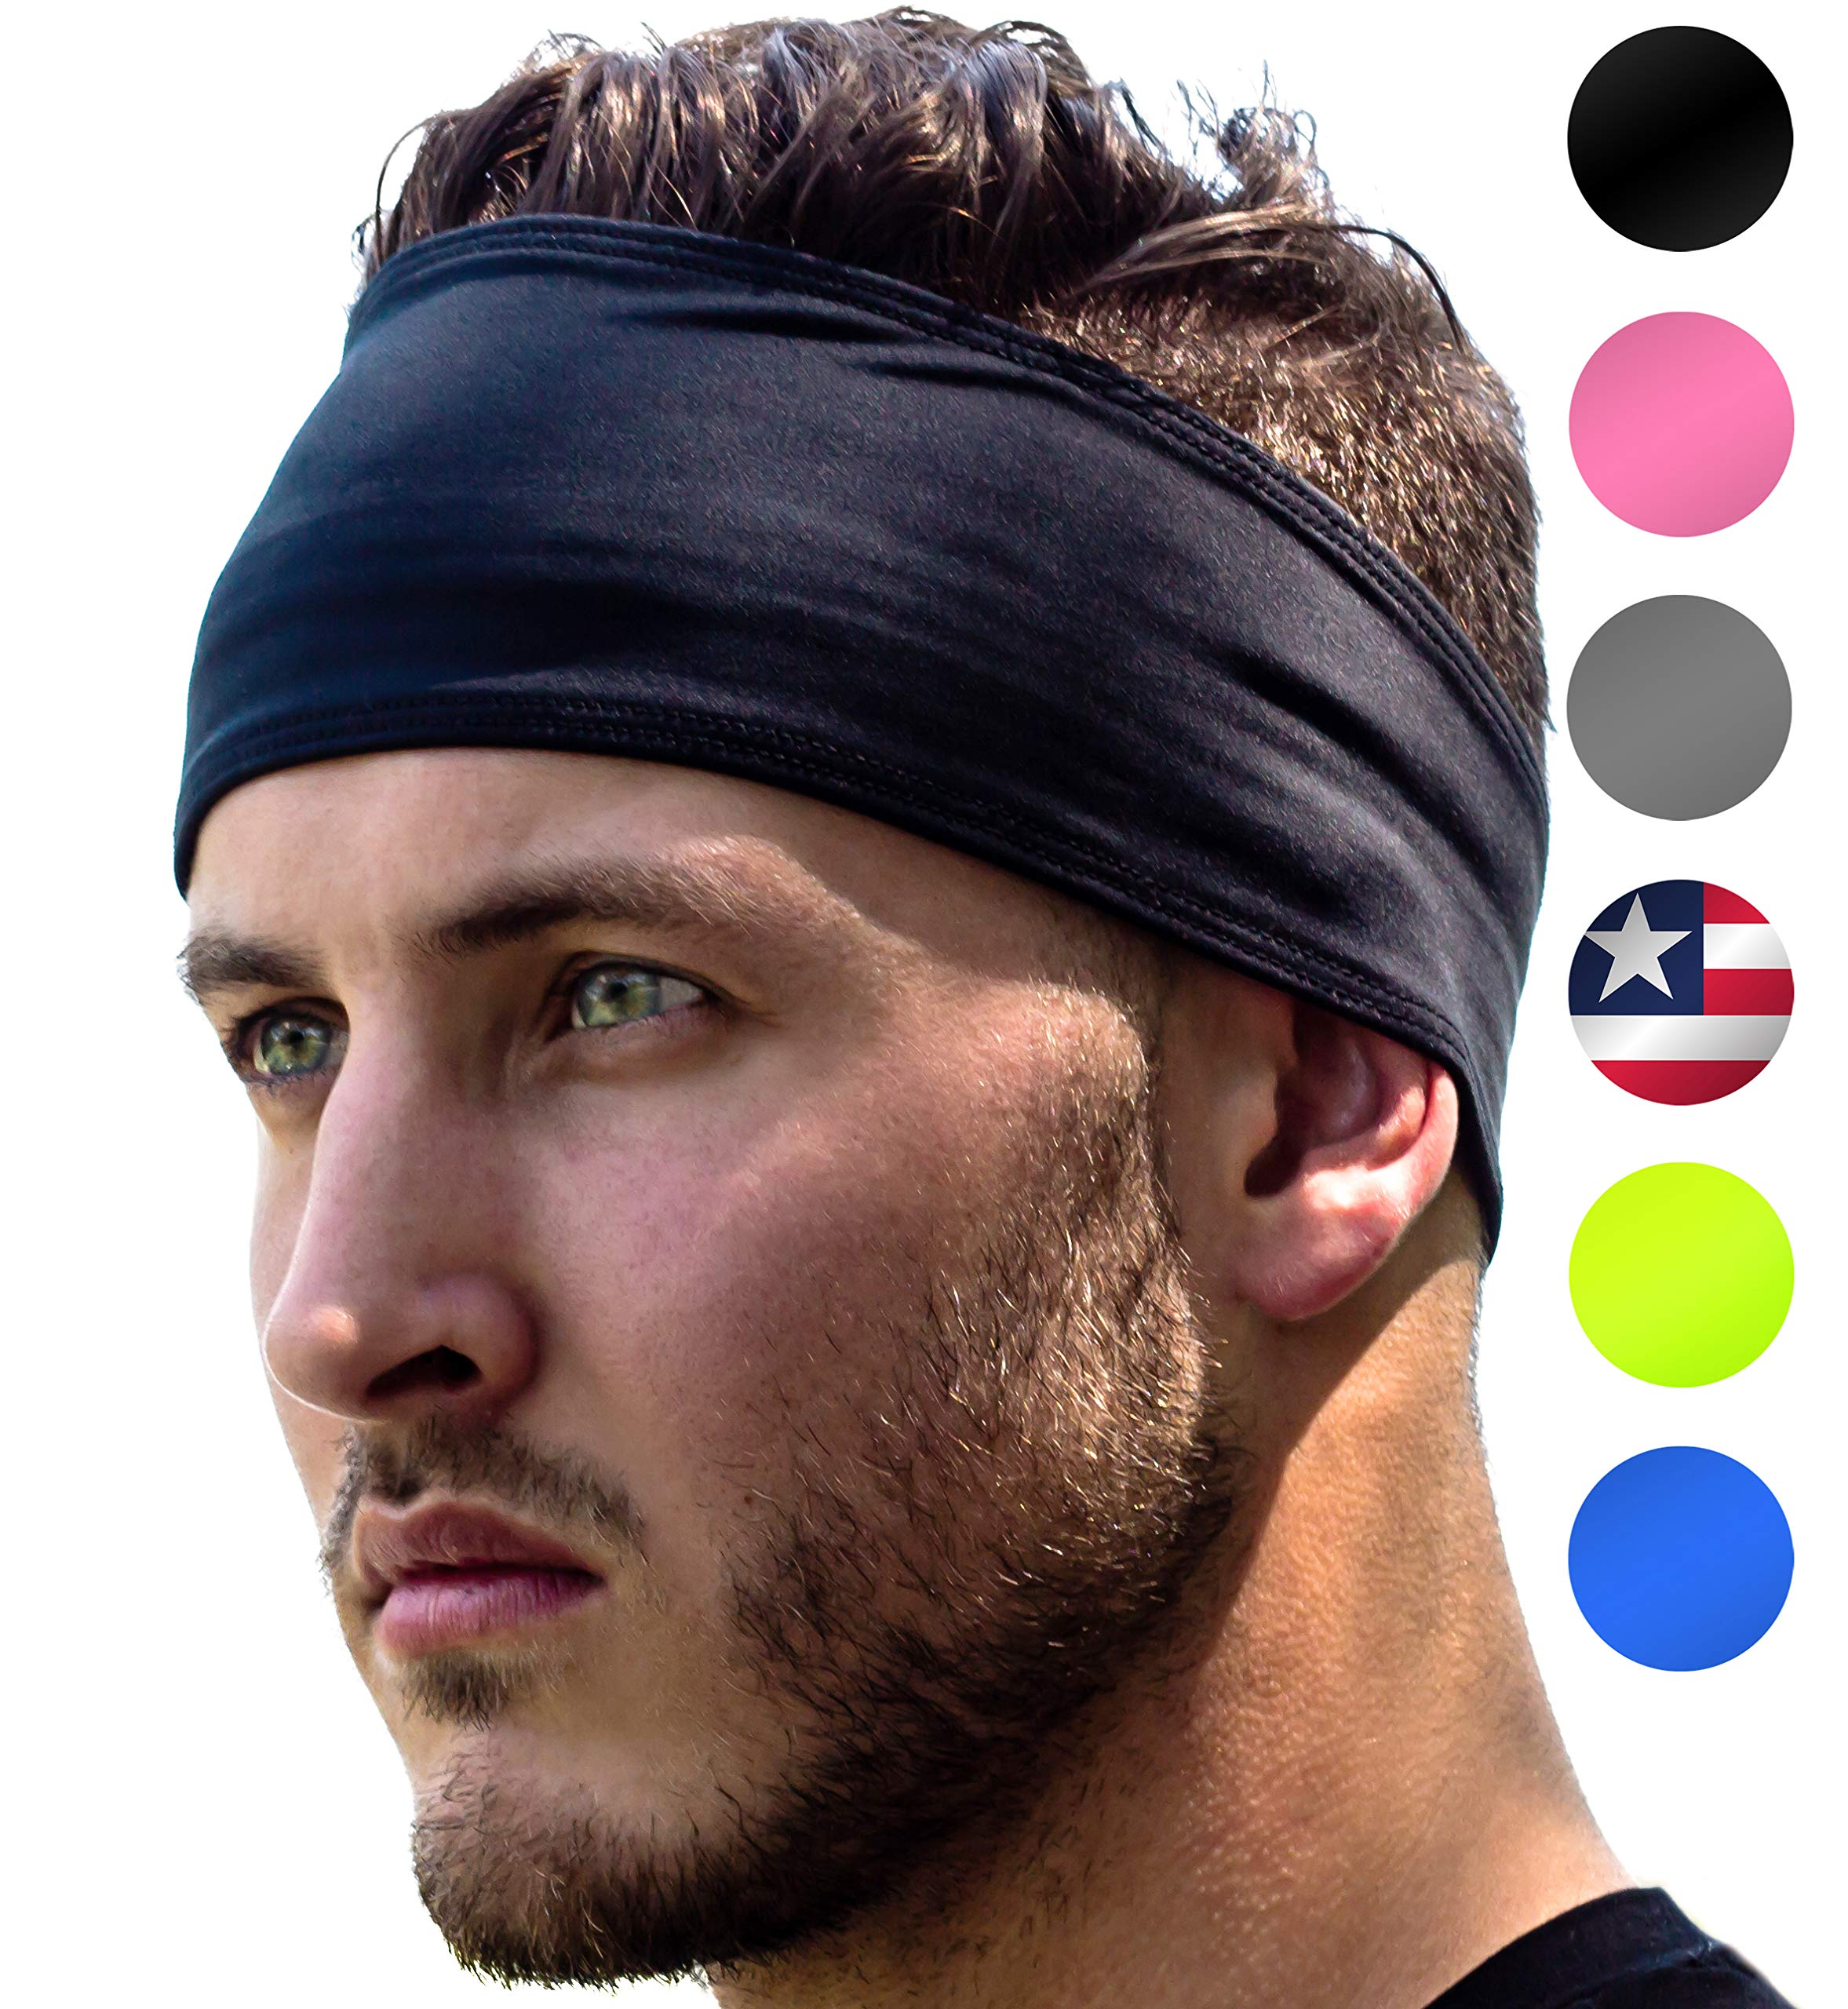 Sports Headband: Unisex Fitness Headbands for Women & Men. Head Band Sweatband for Running, Yoga, Workout Gym Exercise. NO Slip Sport Sweatbands & Sweat Wicking Athletic Head Wrap Bands Black by E Tronic Edge